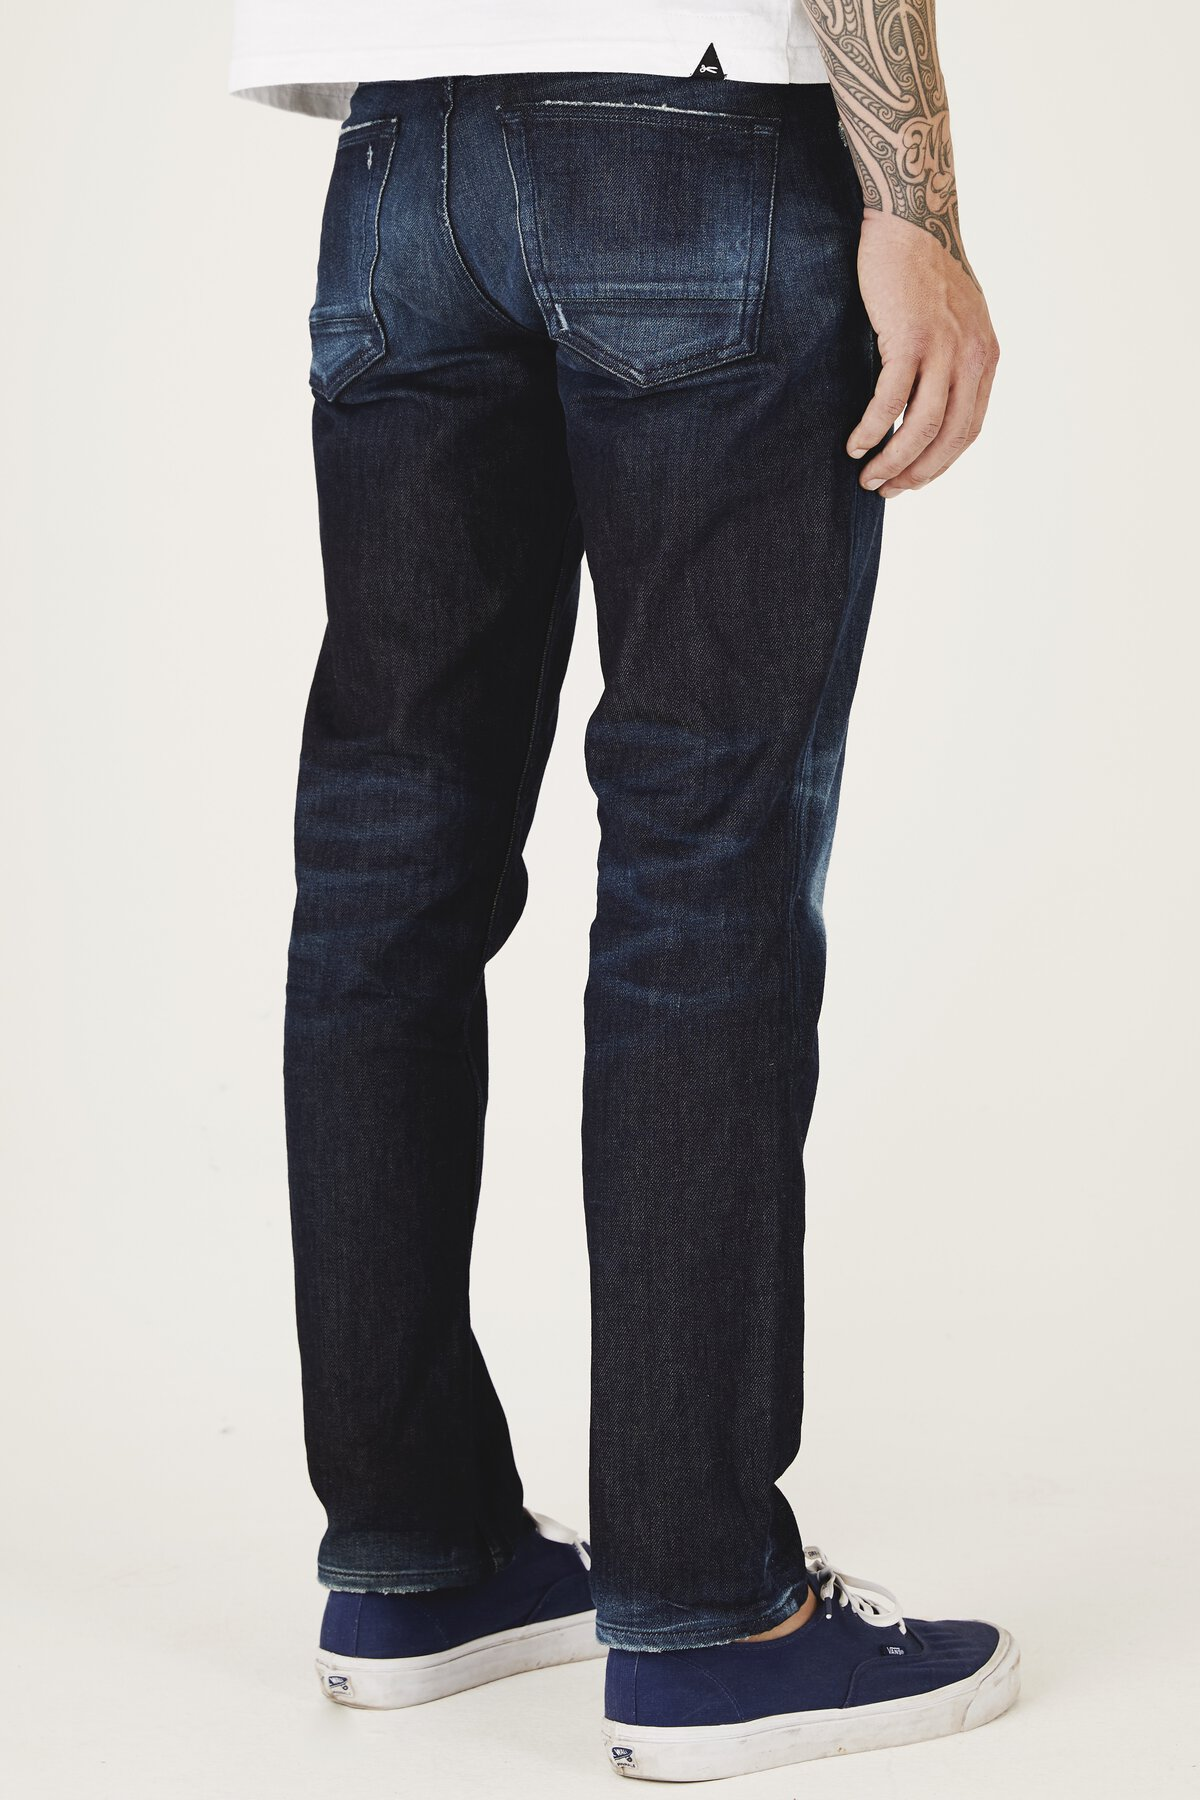 Forge - Relaxed Fit Jeans - Back